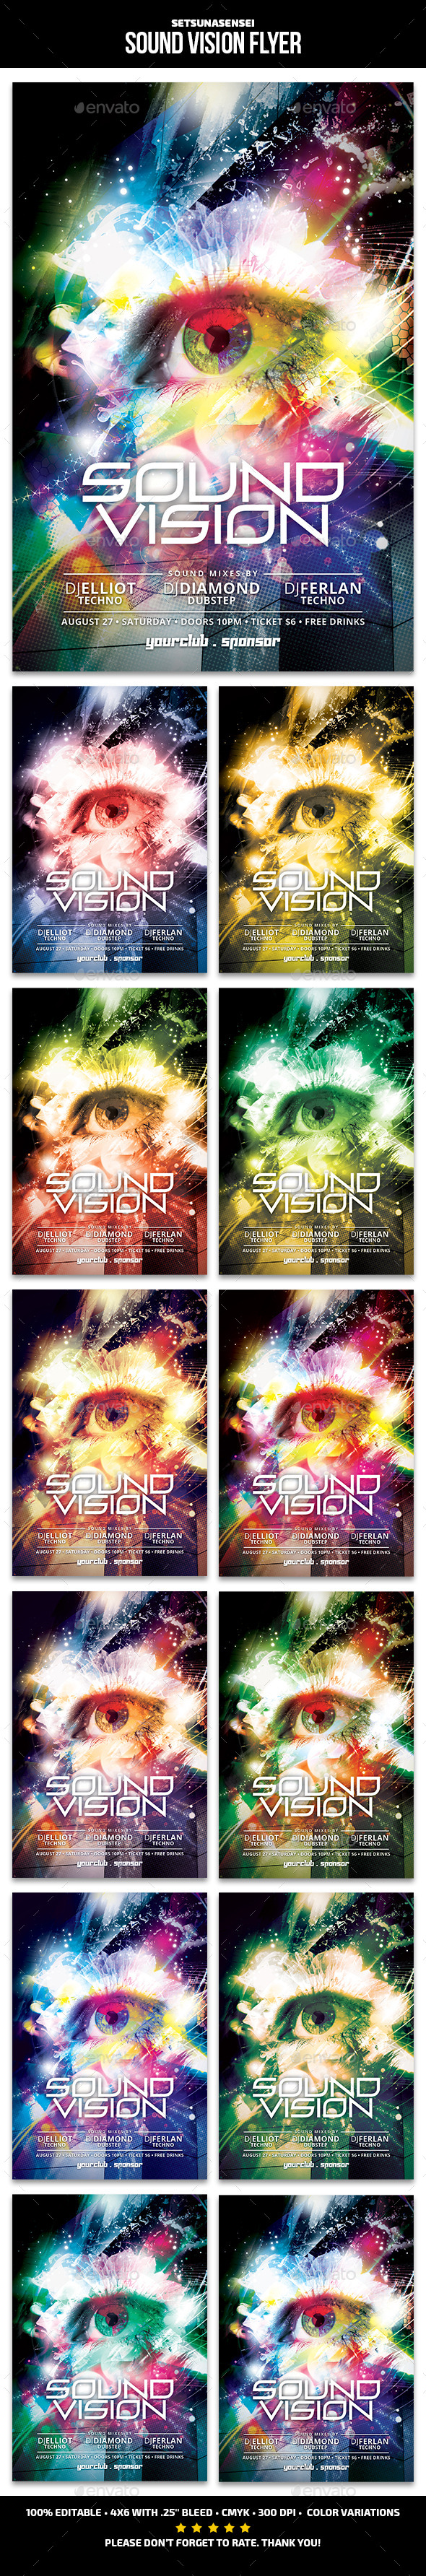 Sound Vision Flyer - Clubs & Parties Events